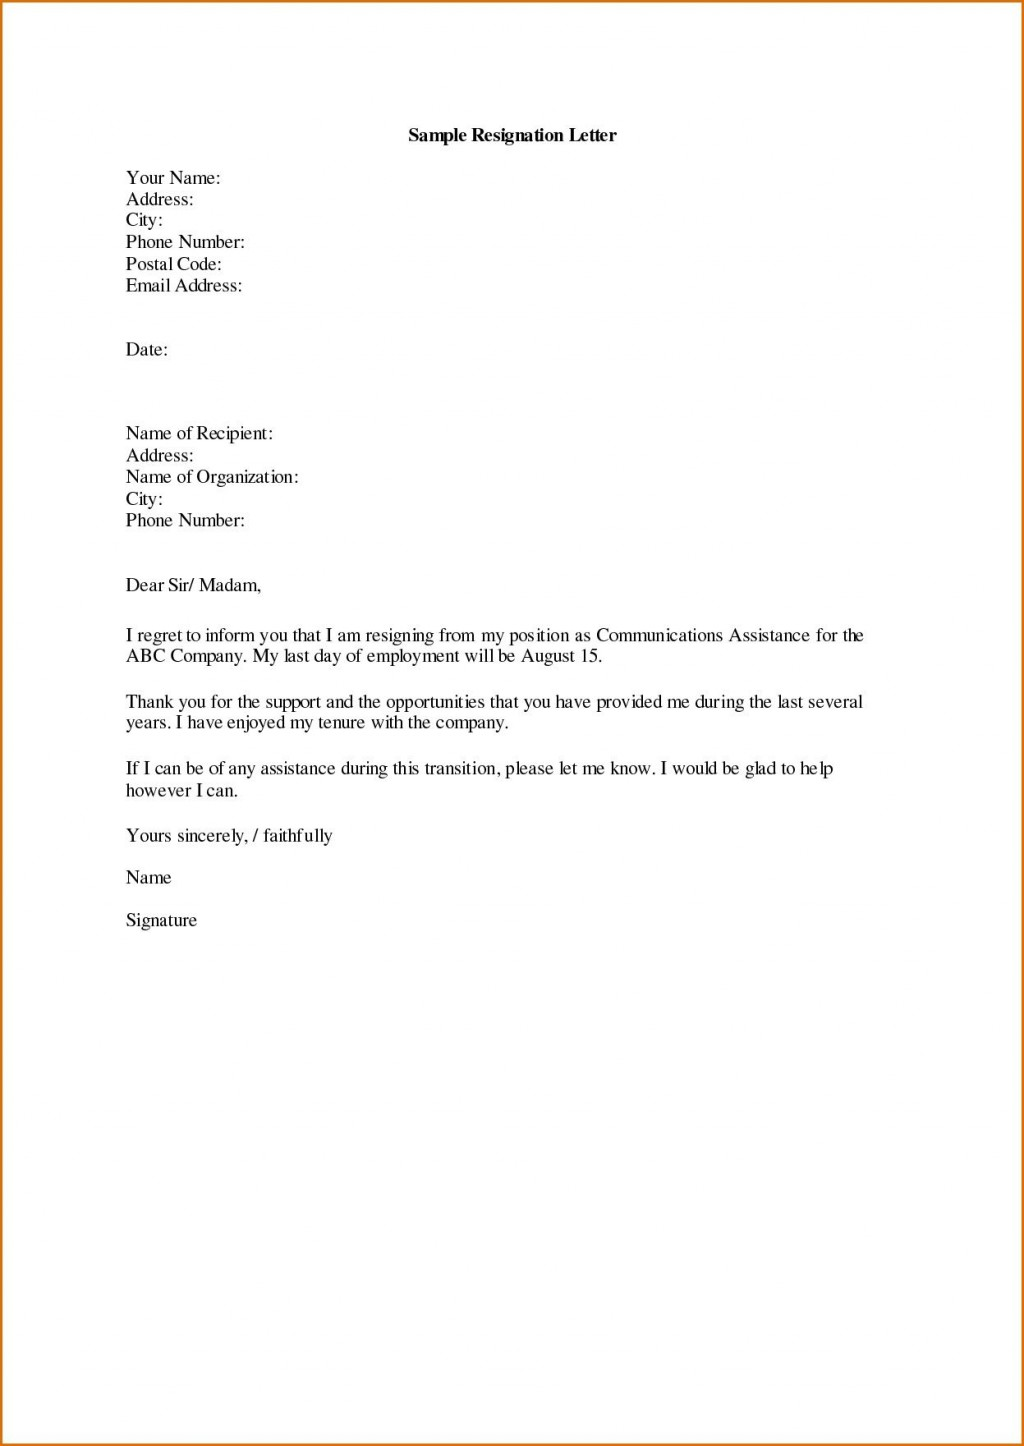 003 Awful Sample Resignation Letter Template High Def  For Teacher Word - Free DownloadableLarge